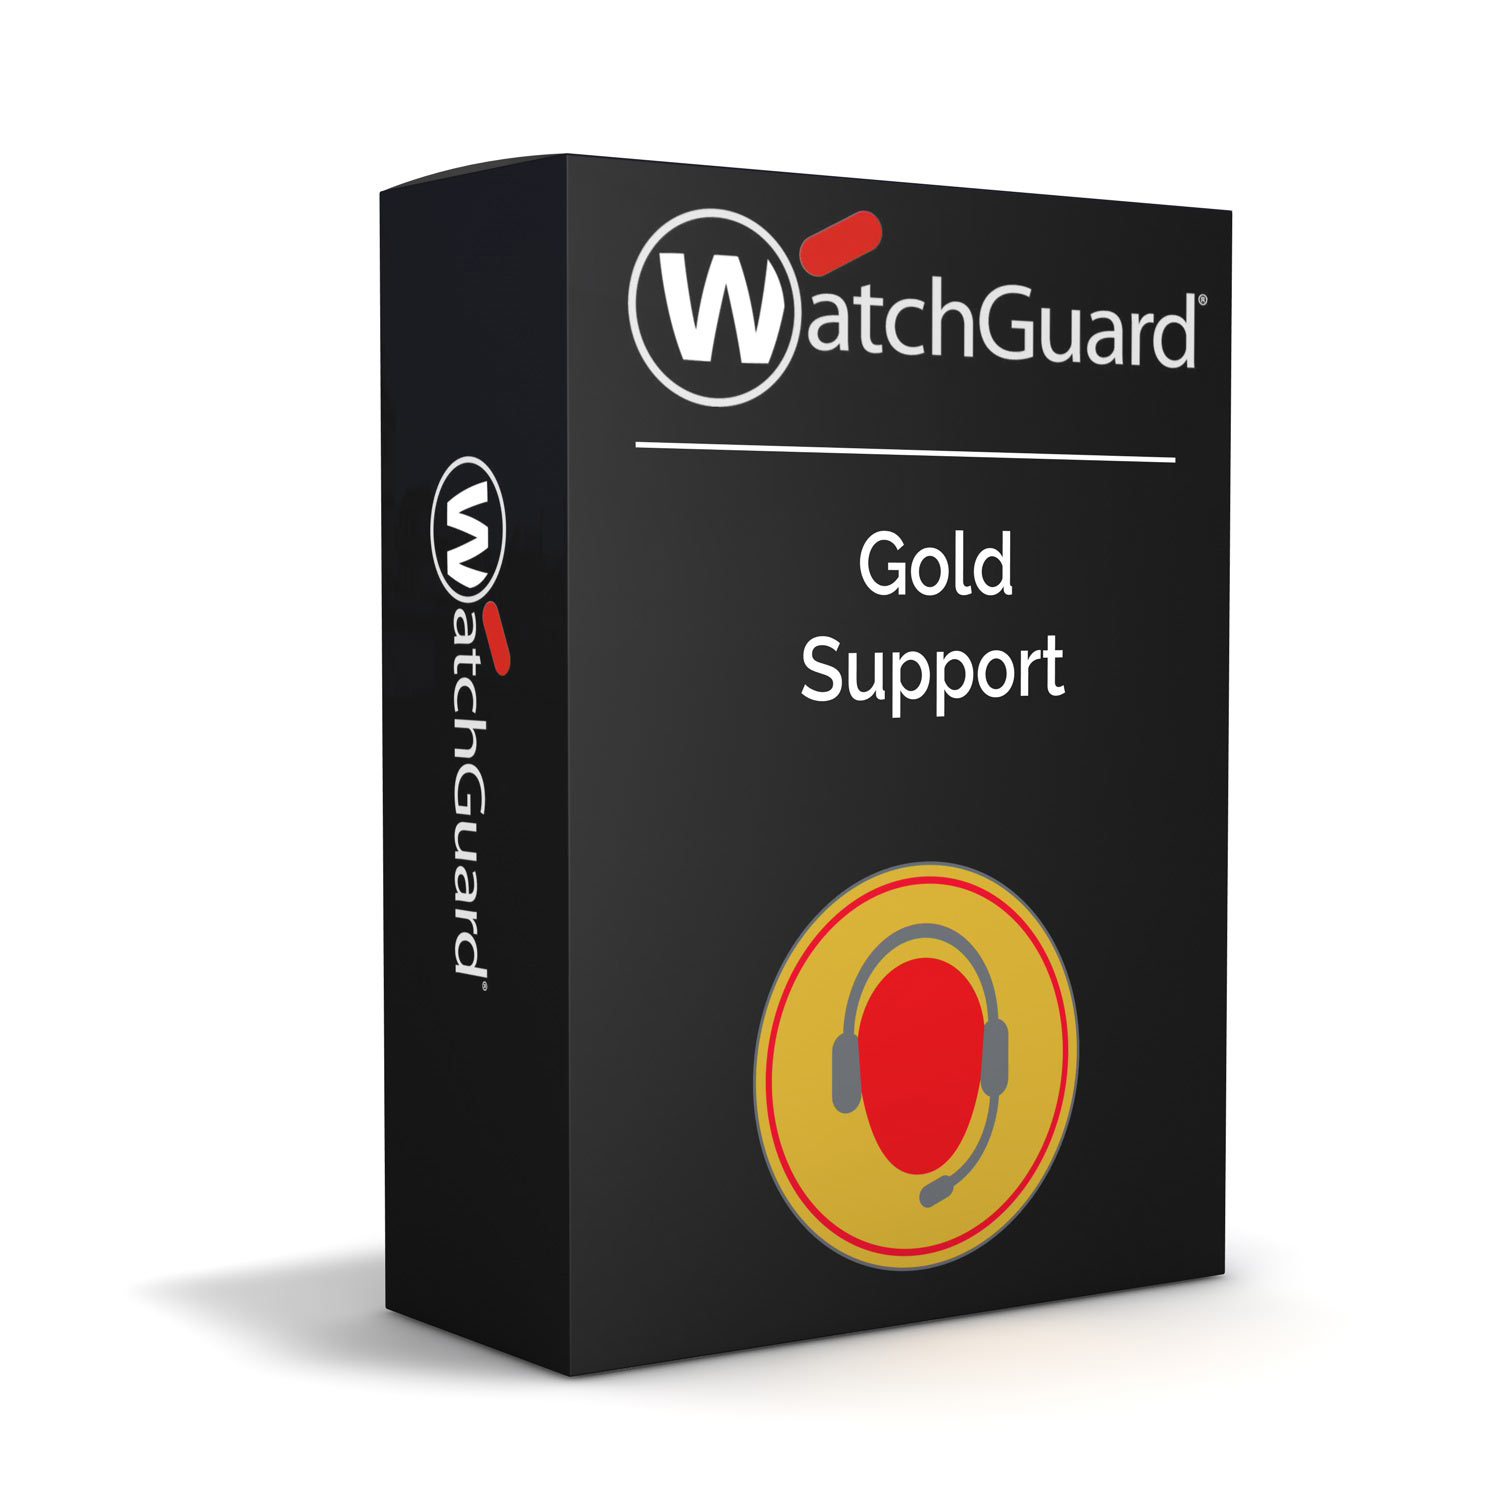 WatchGuard Gold Support Renewal/Upgrade 1-yr for Firebox T70